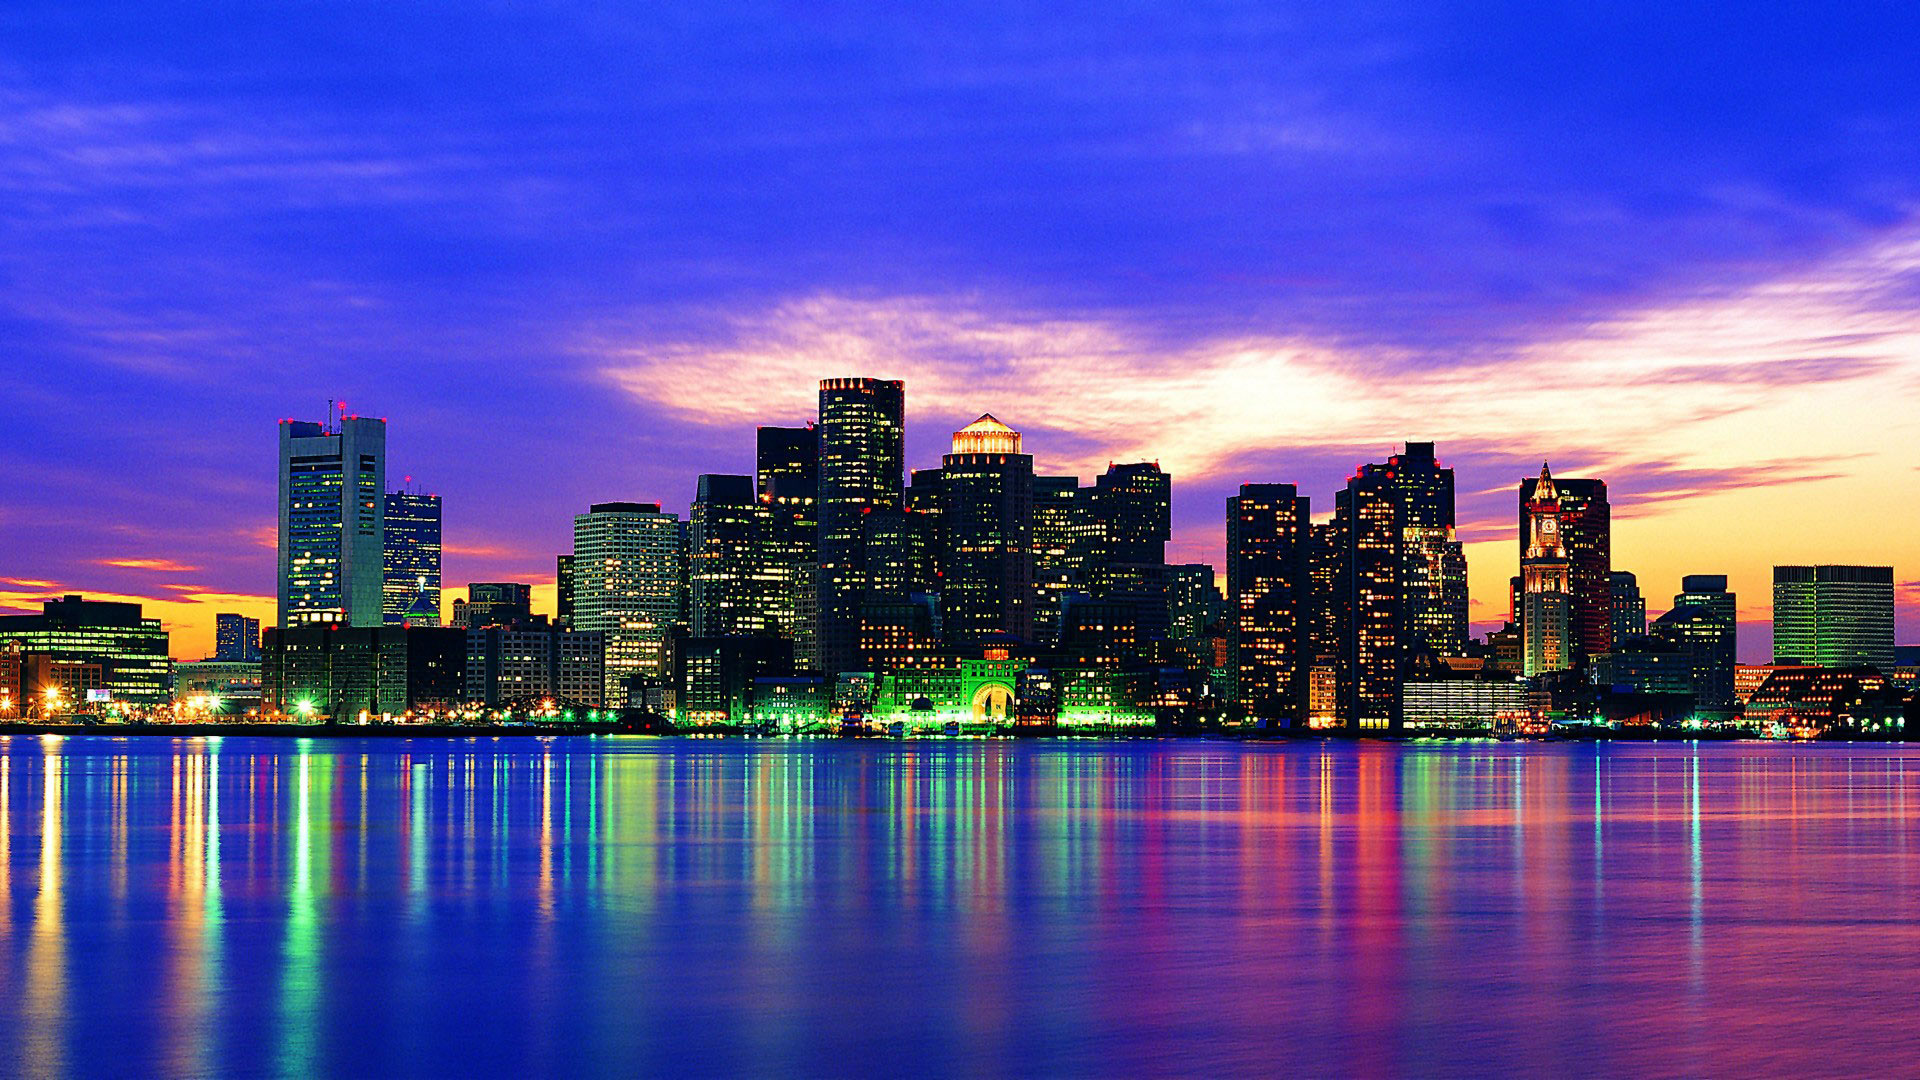 40 hd new york city wallpapers backgrounds for free download for Places to see in nyc at night